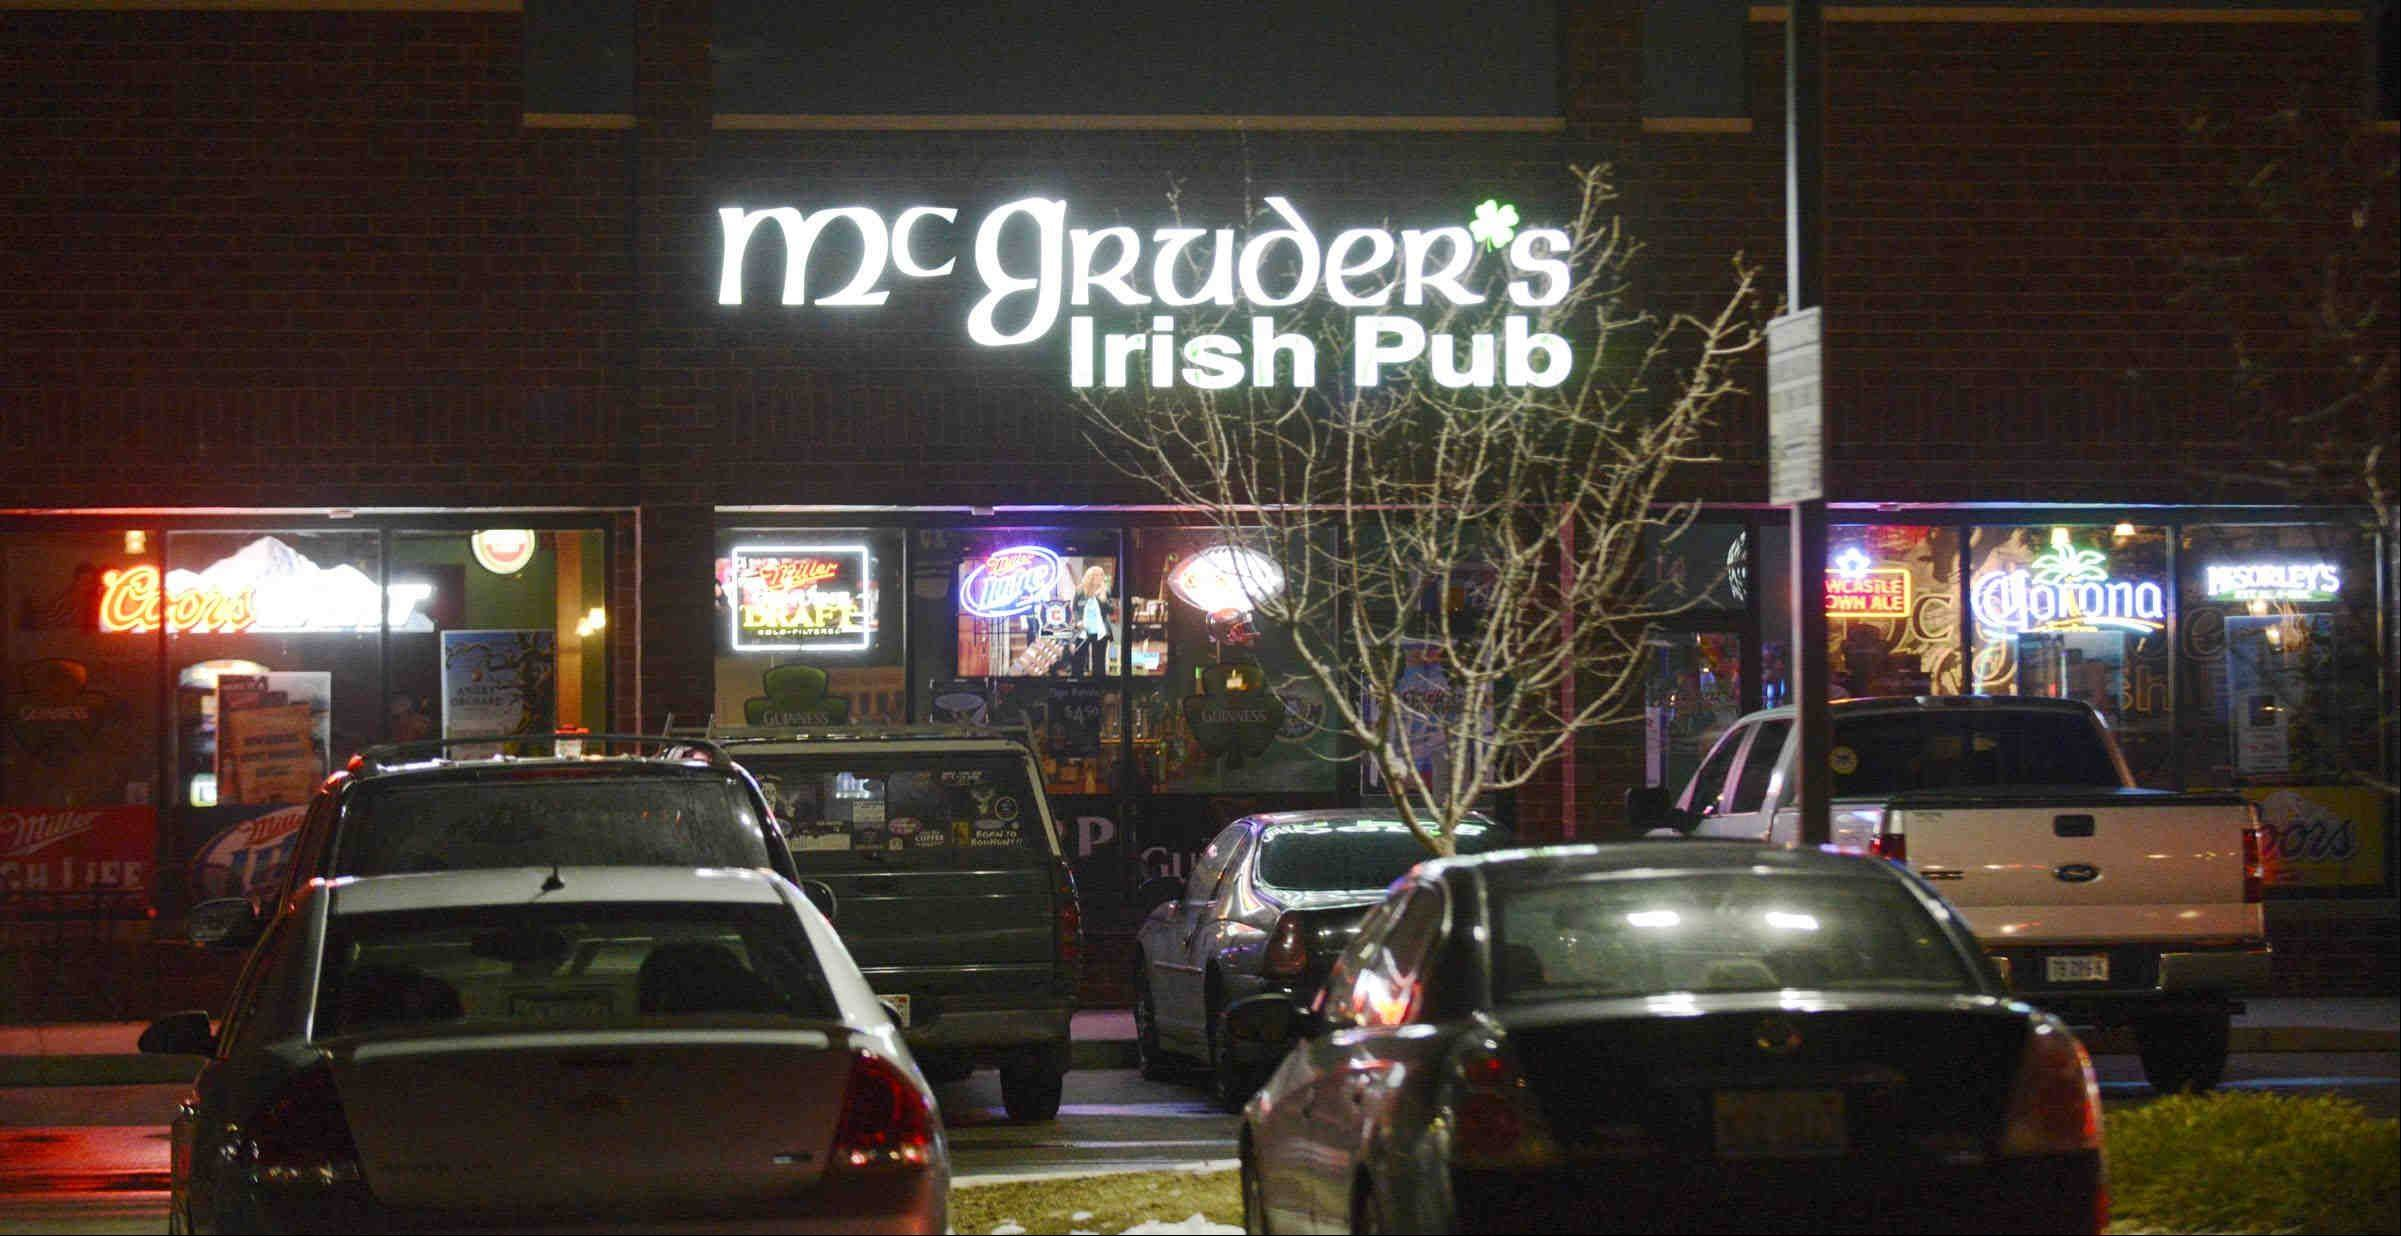 McGruder's Irish Pub opened in July in Elgin.